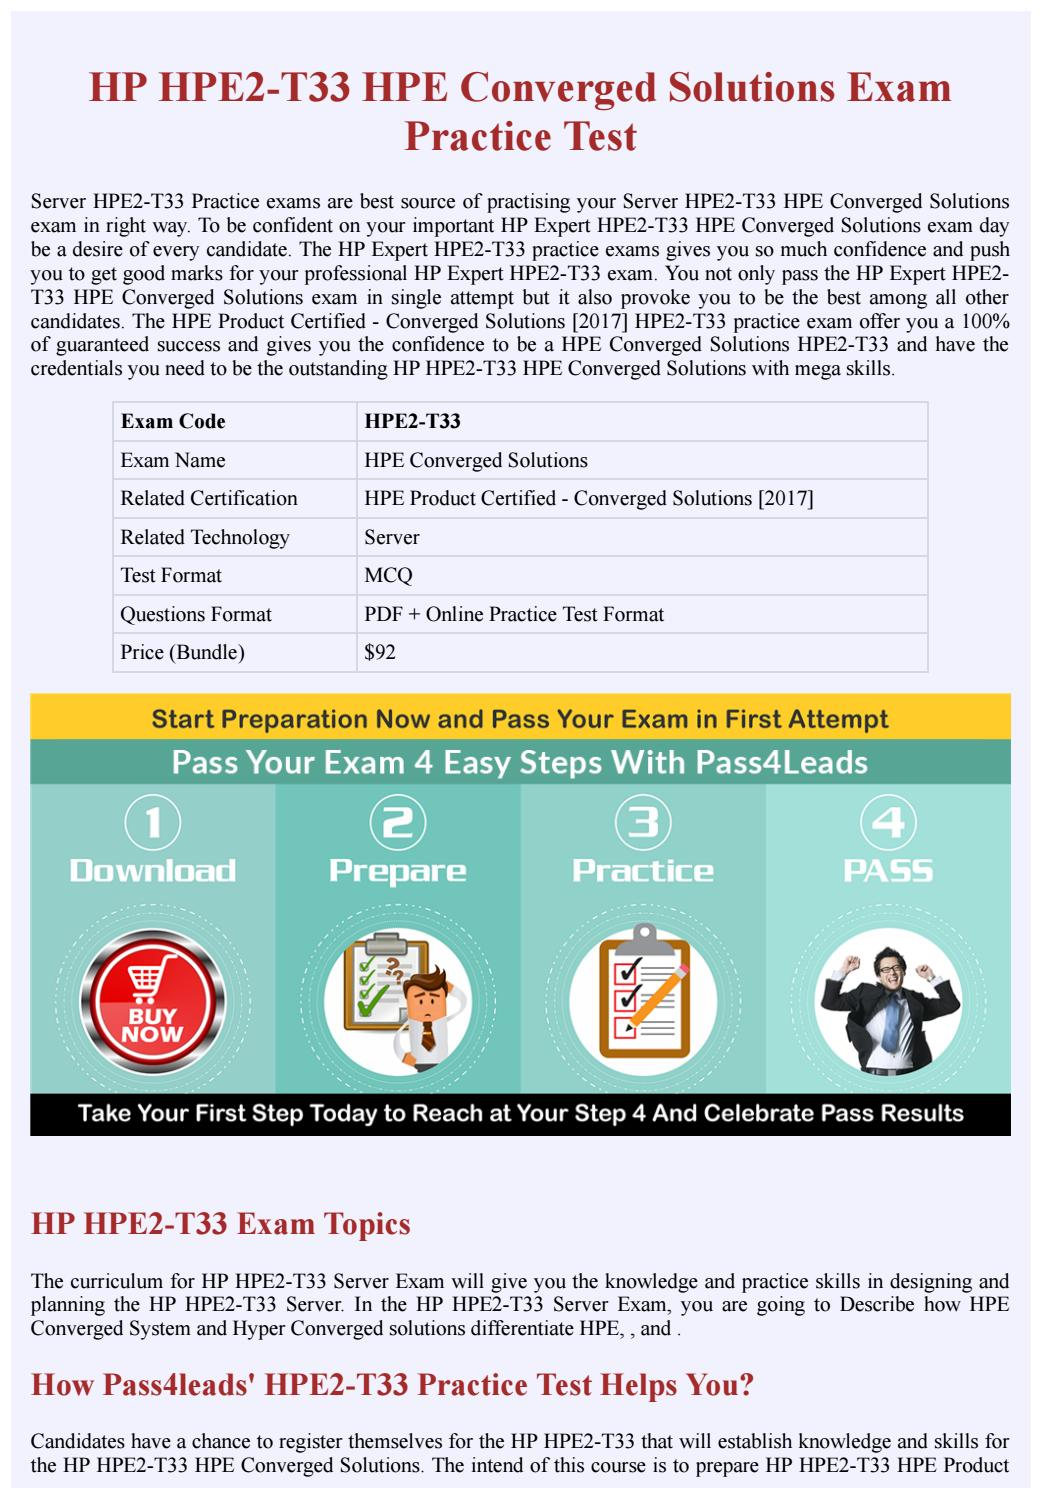 Server HPE2-T33 PDF Questions by Pass4leads Exam Questions